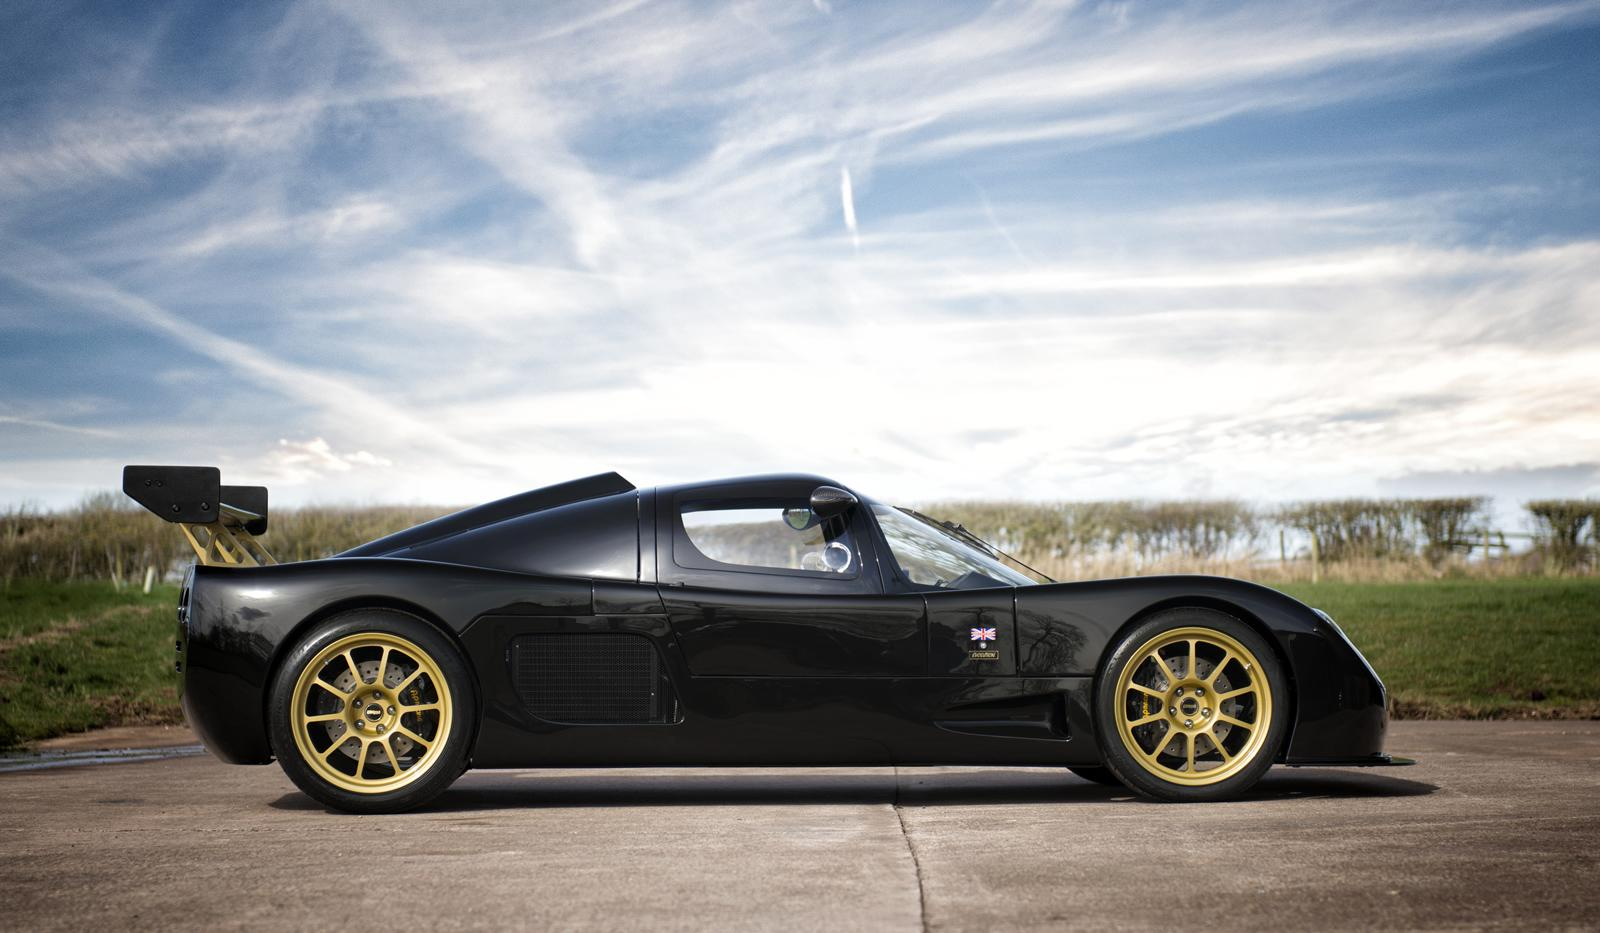 Ultima Gtr For Sale >> Official: 2016 Ultima Evolution Coupe and Convertible - GTspirit